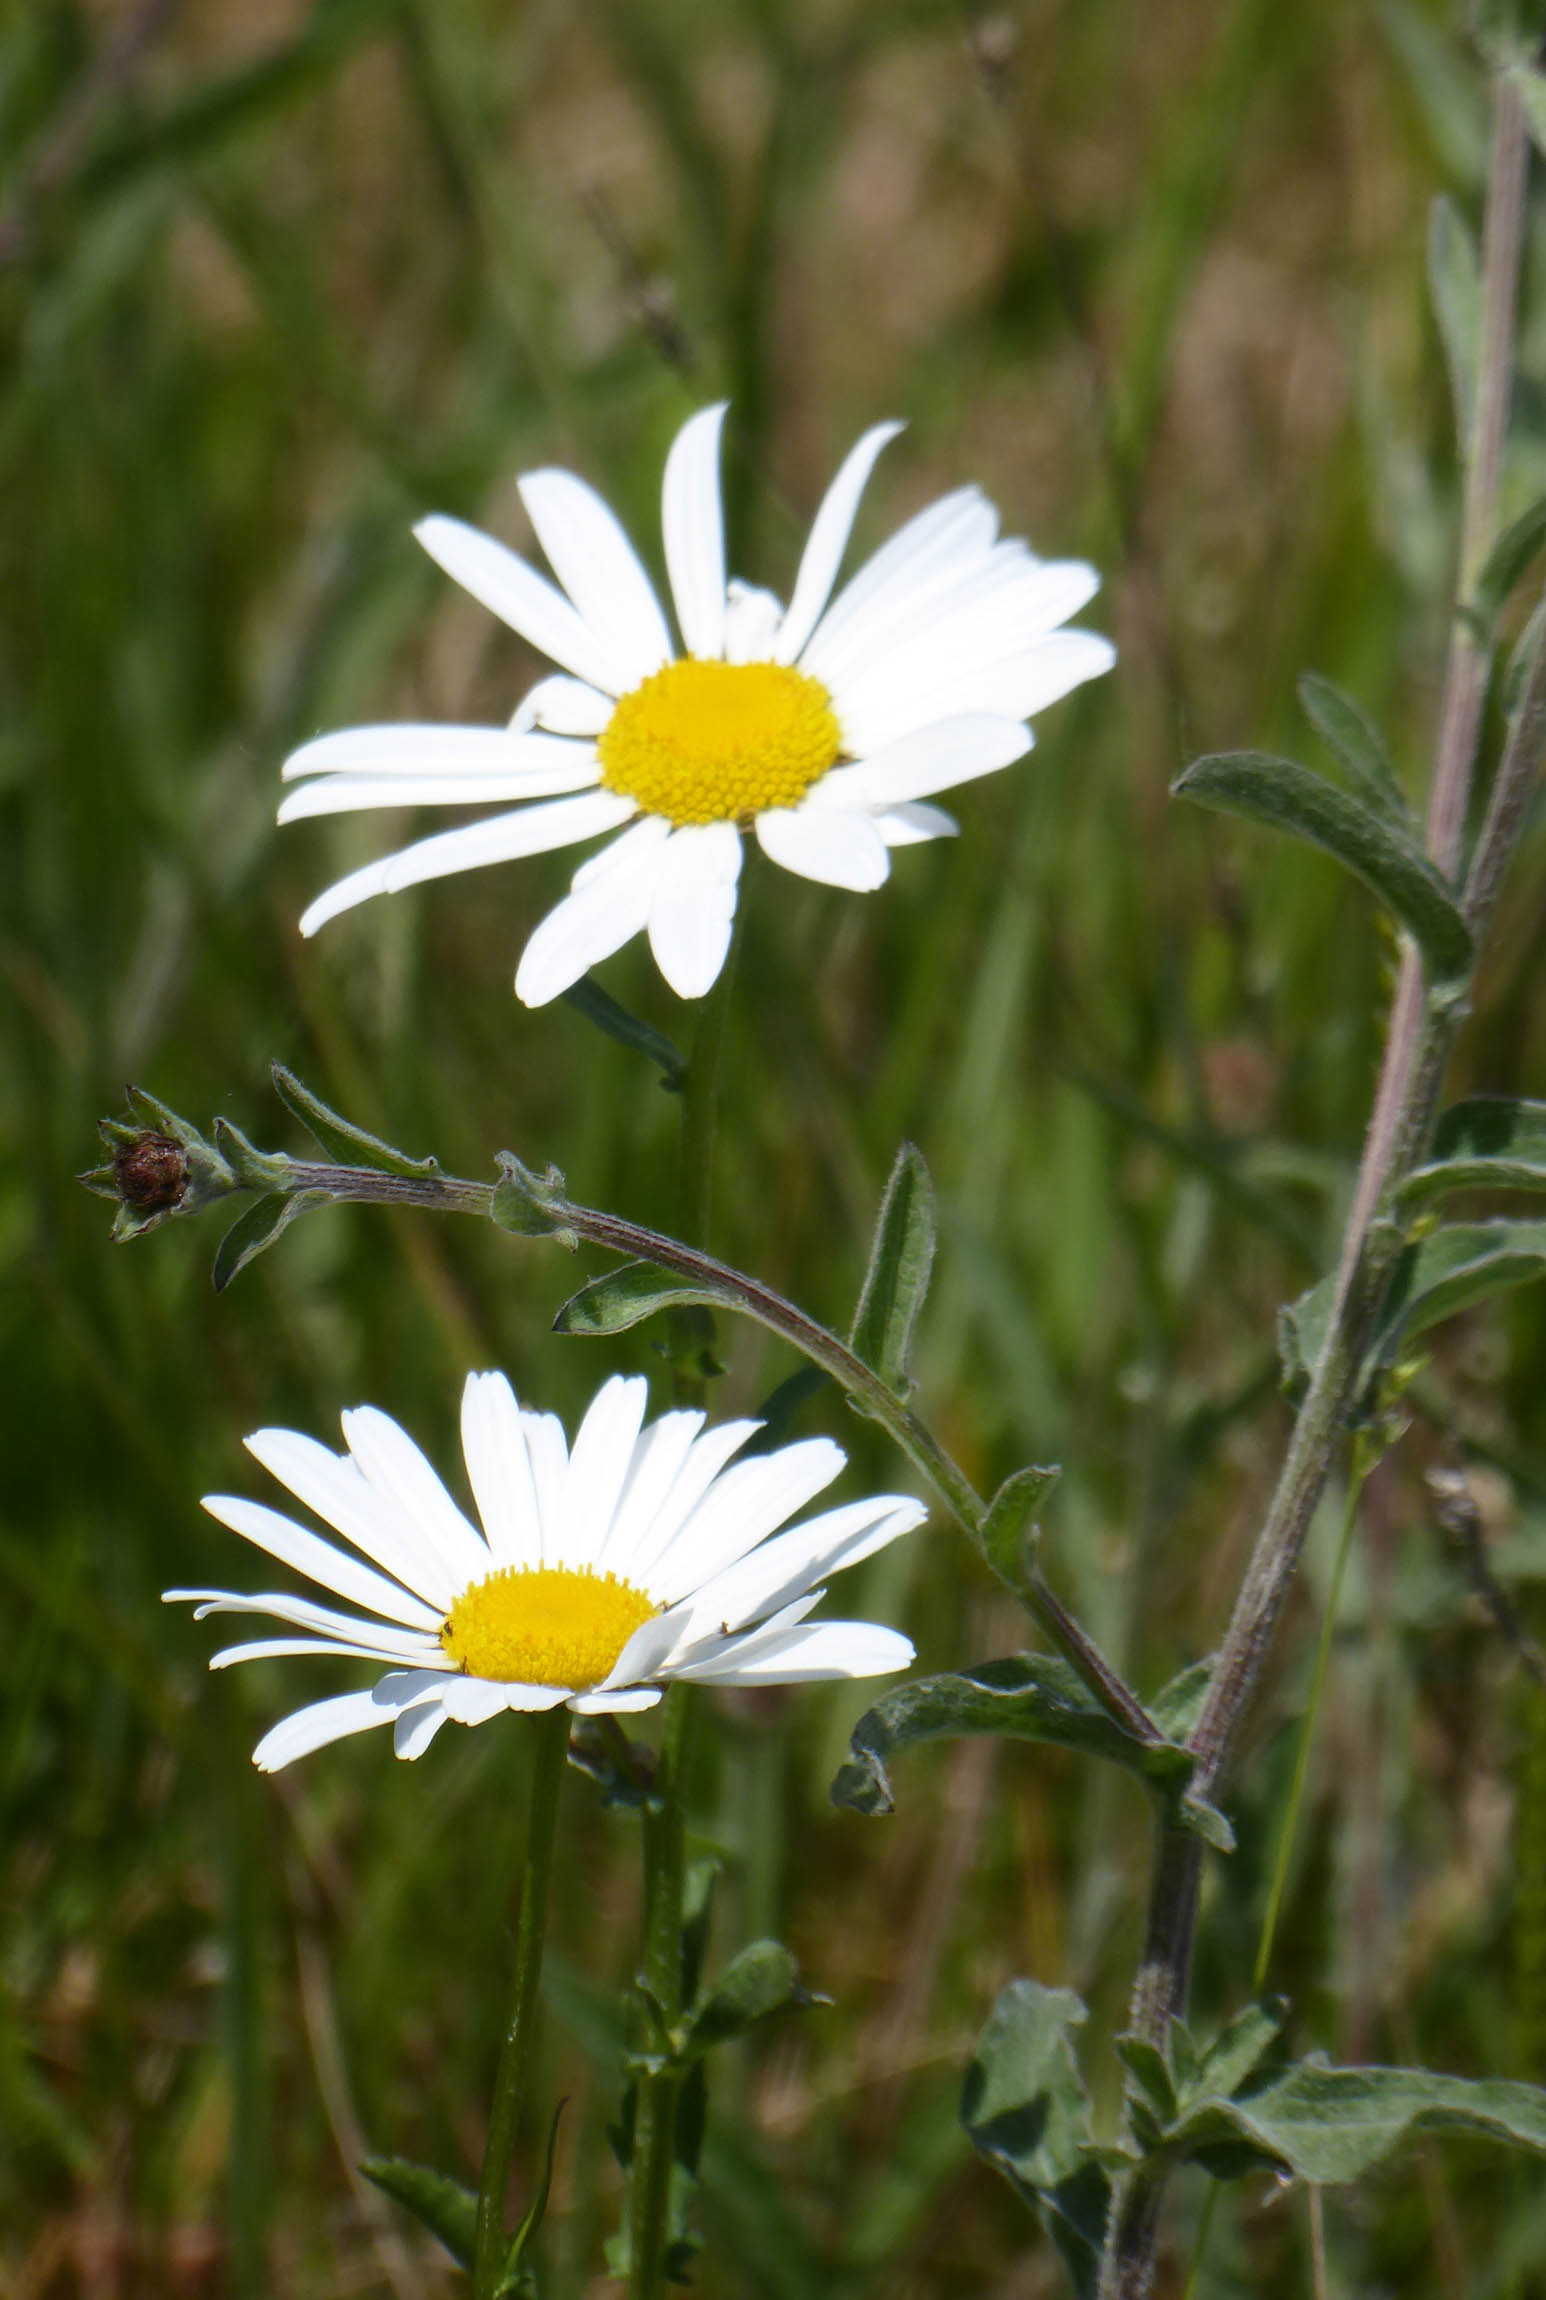 Two large daisies